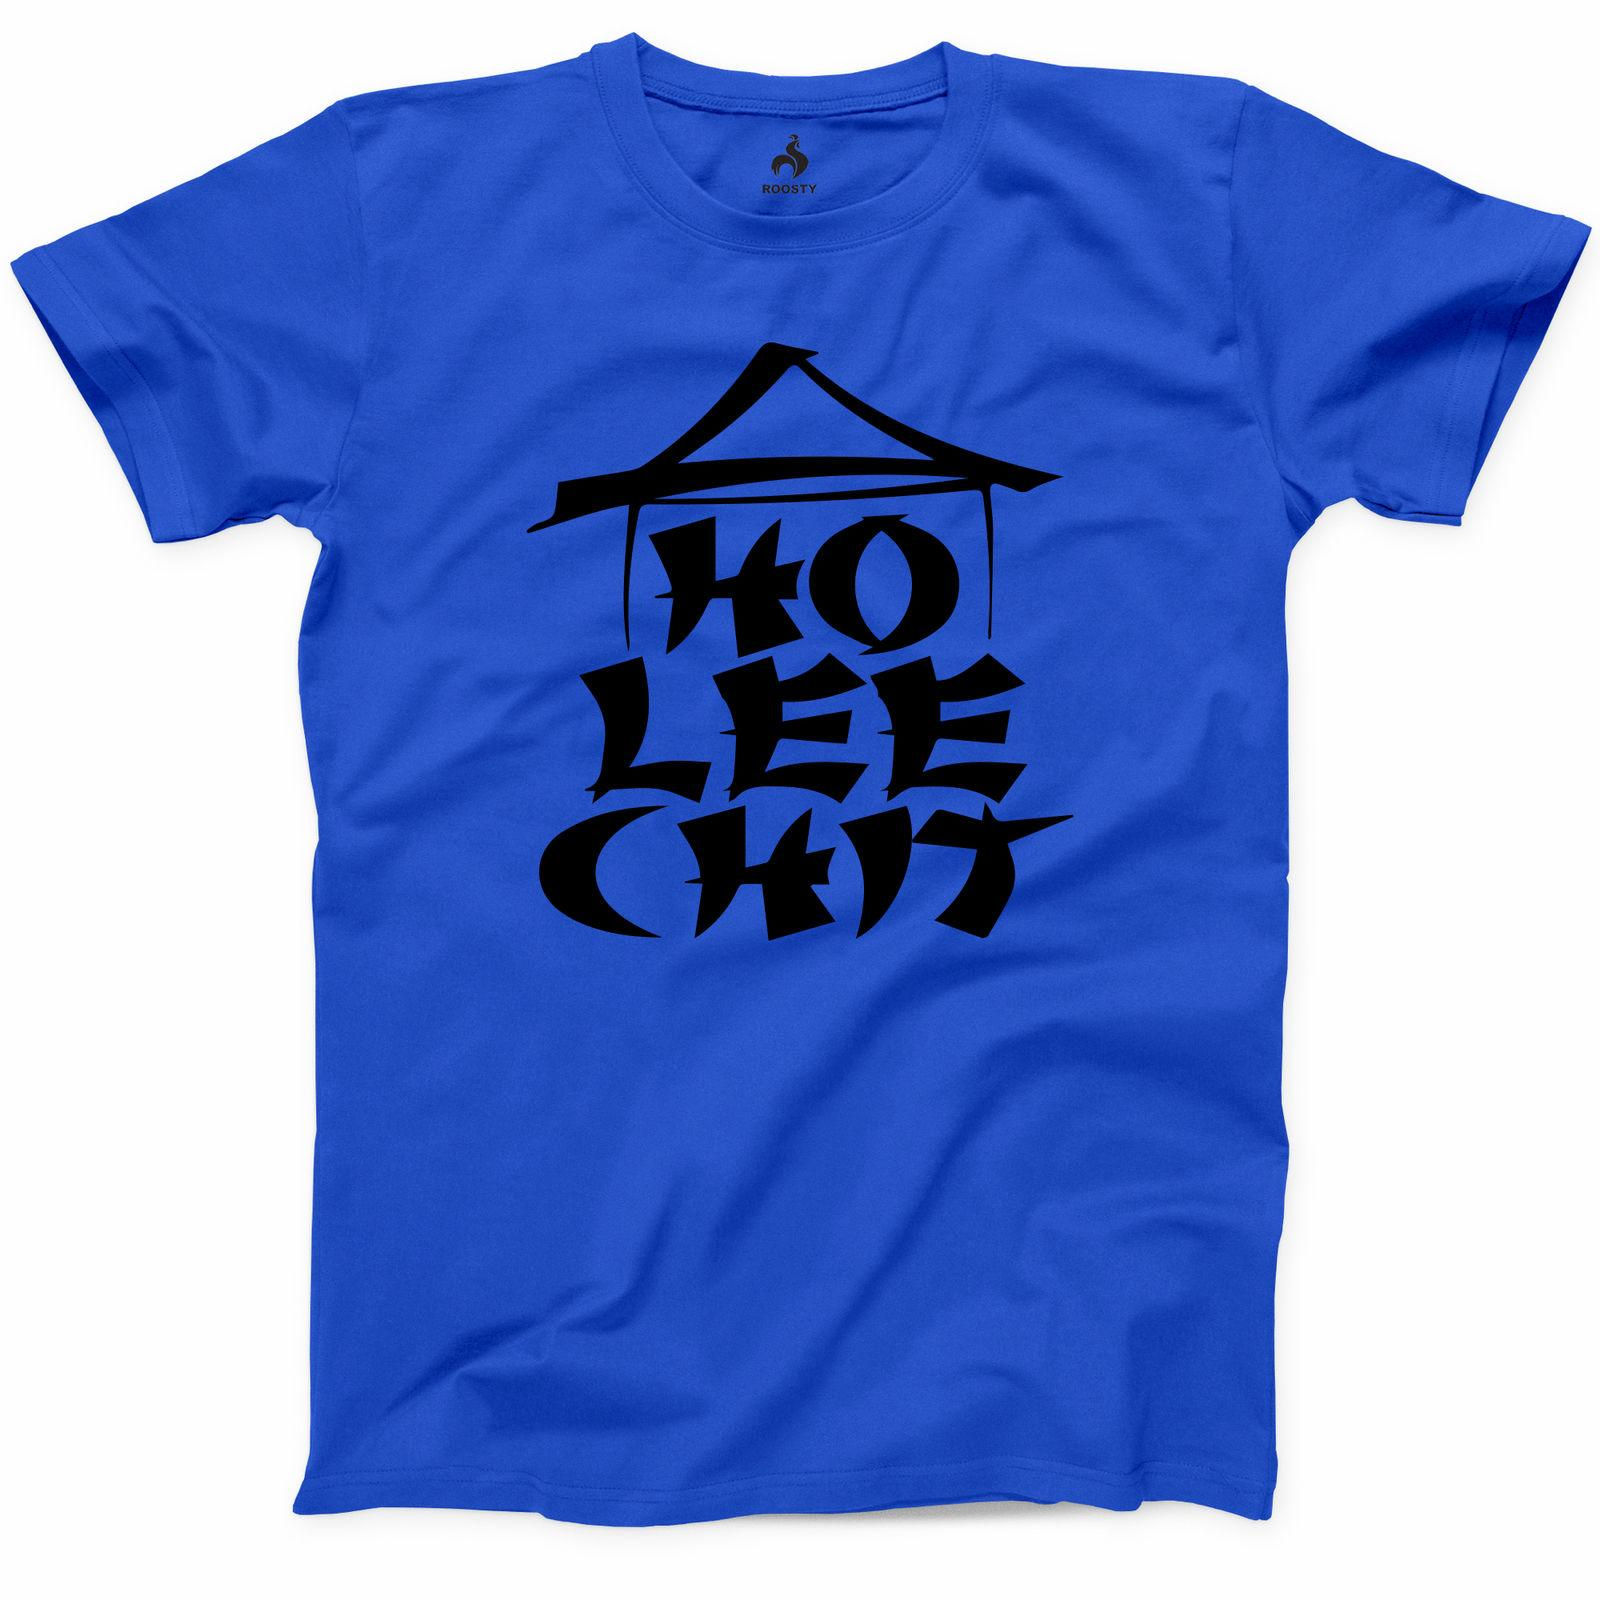 eb9a2add Ho Lee Chit Funny T Shirt Adult Holy Humor Party Asian Gag Gift Unisex Tee  S Funny Unisex Tee Make T Shirts Shirt Designs From Tshirt_press, $12.96   DHgate.